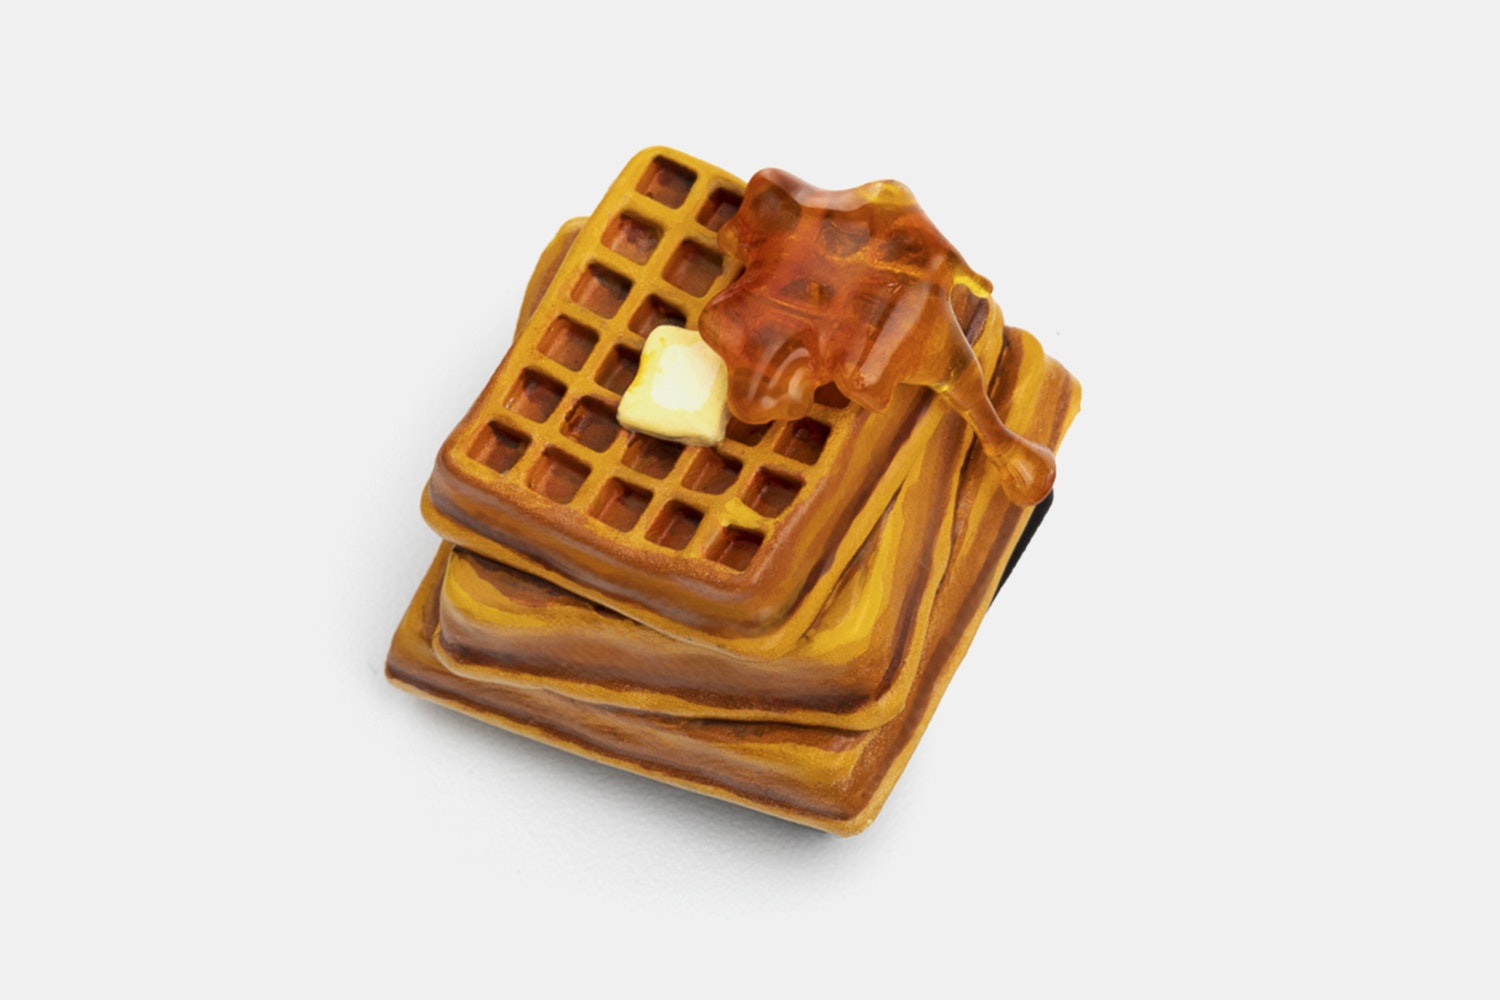 Dwarf Factory Foodie Artisan Keycap - Fluffy Waffle (No Cover)